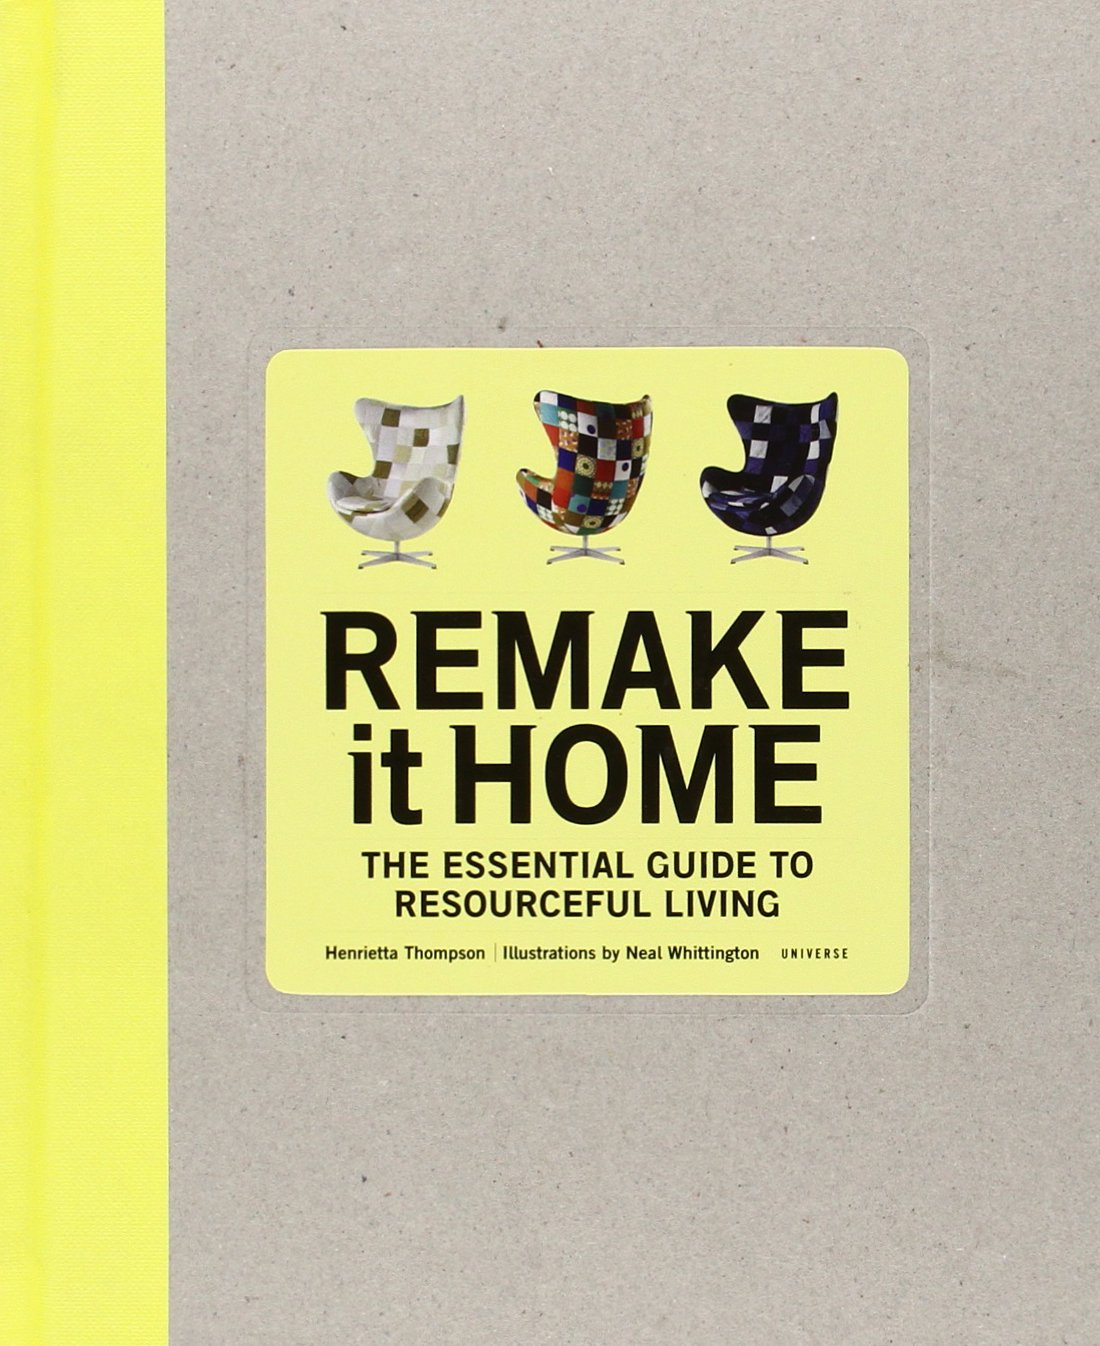 Remake It Home: The Essential Guide To Resourceful Living: Henrietta  Thompson, Neal Whittington: 9780789320568: Amazon.com: Books